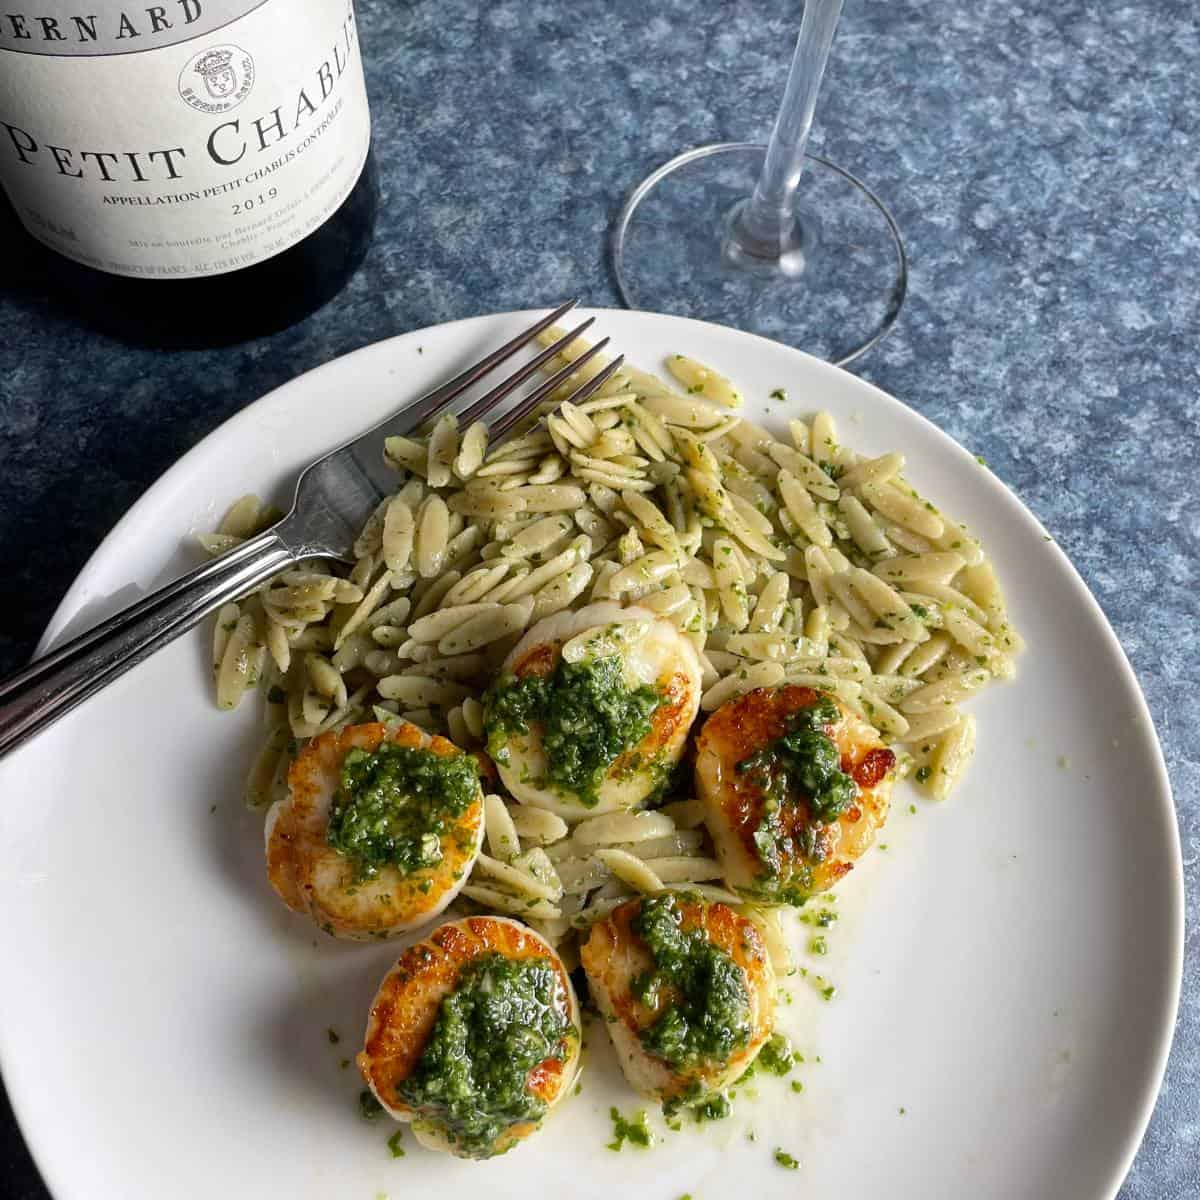 scallops topped with pesto, plated with orzo, and served with a bottle of Chablis wine.